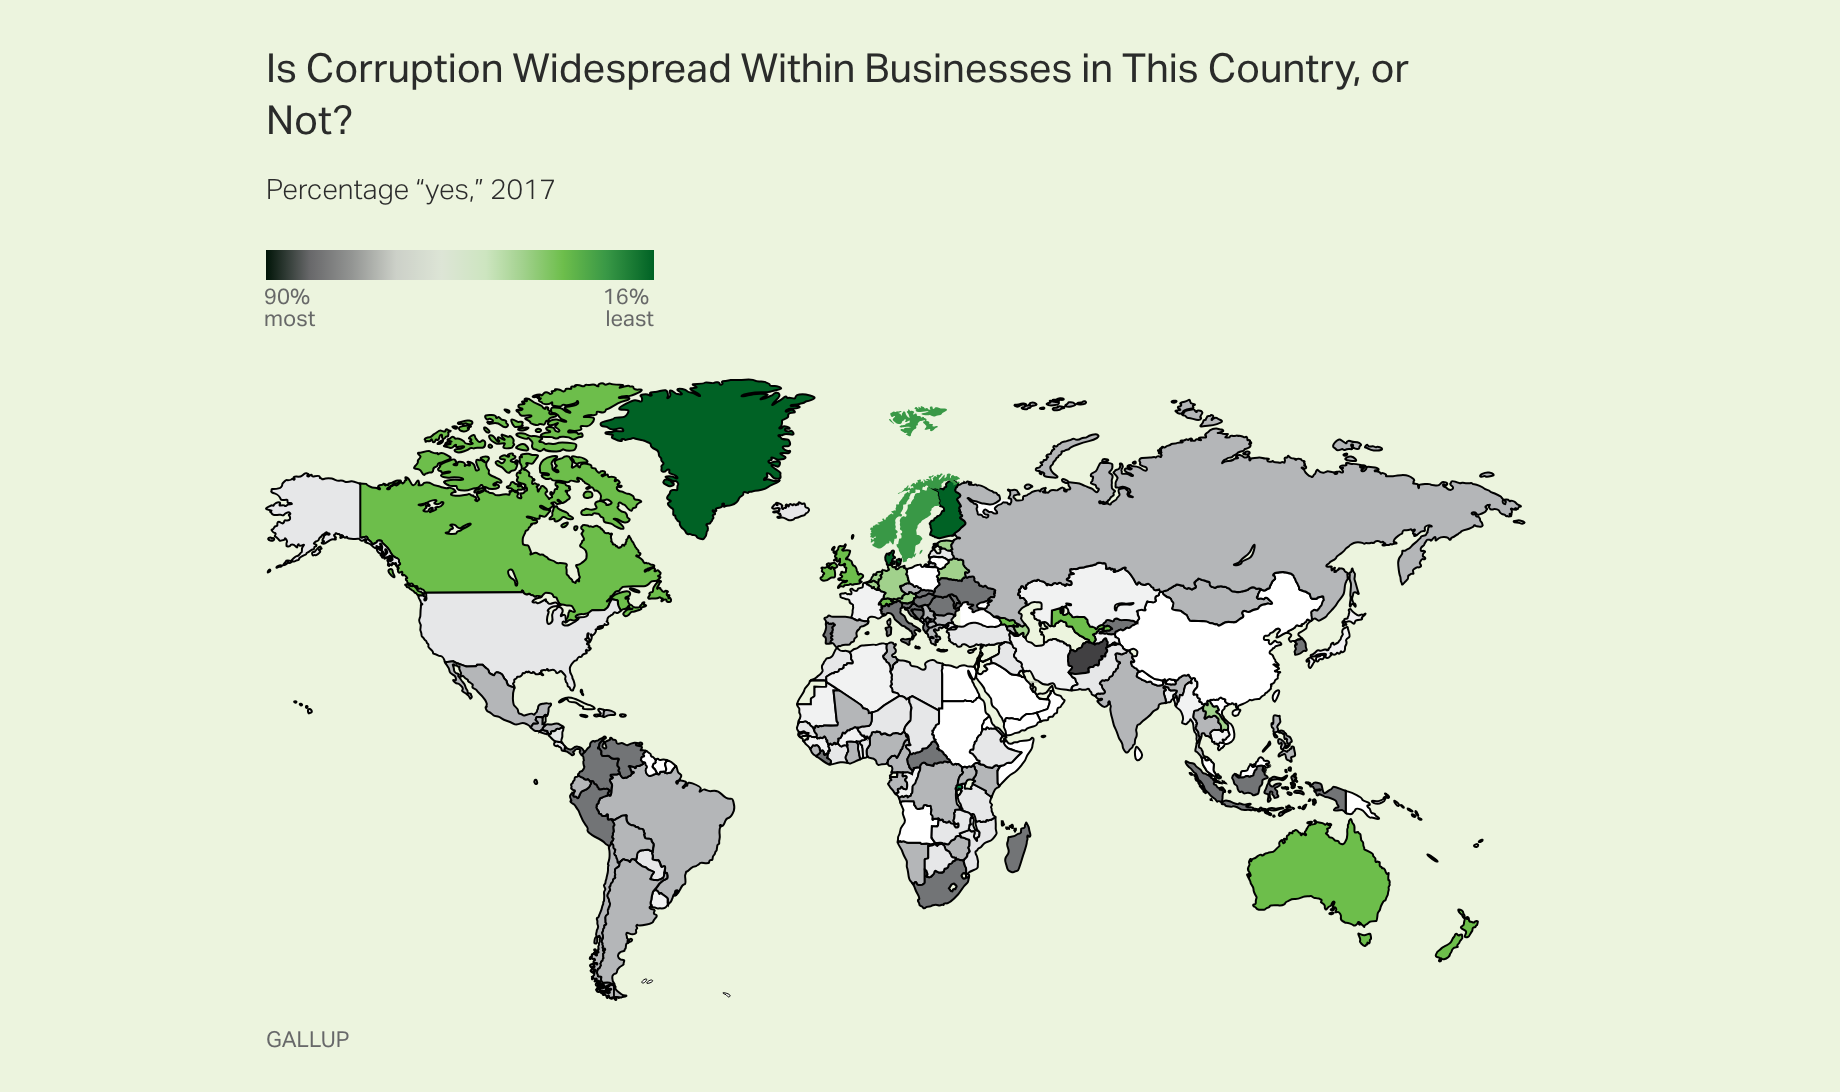 World map: Is corruption widespread within businesses in this country or not?